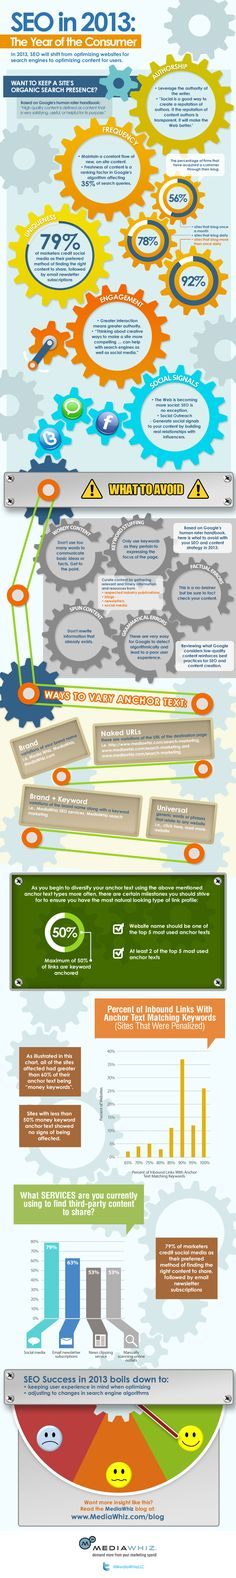 #SEO in 2013:  #Infographic